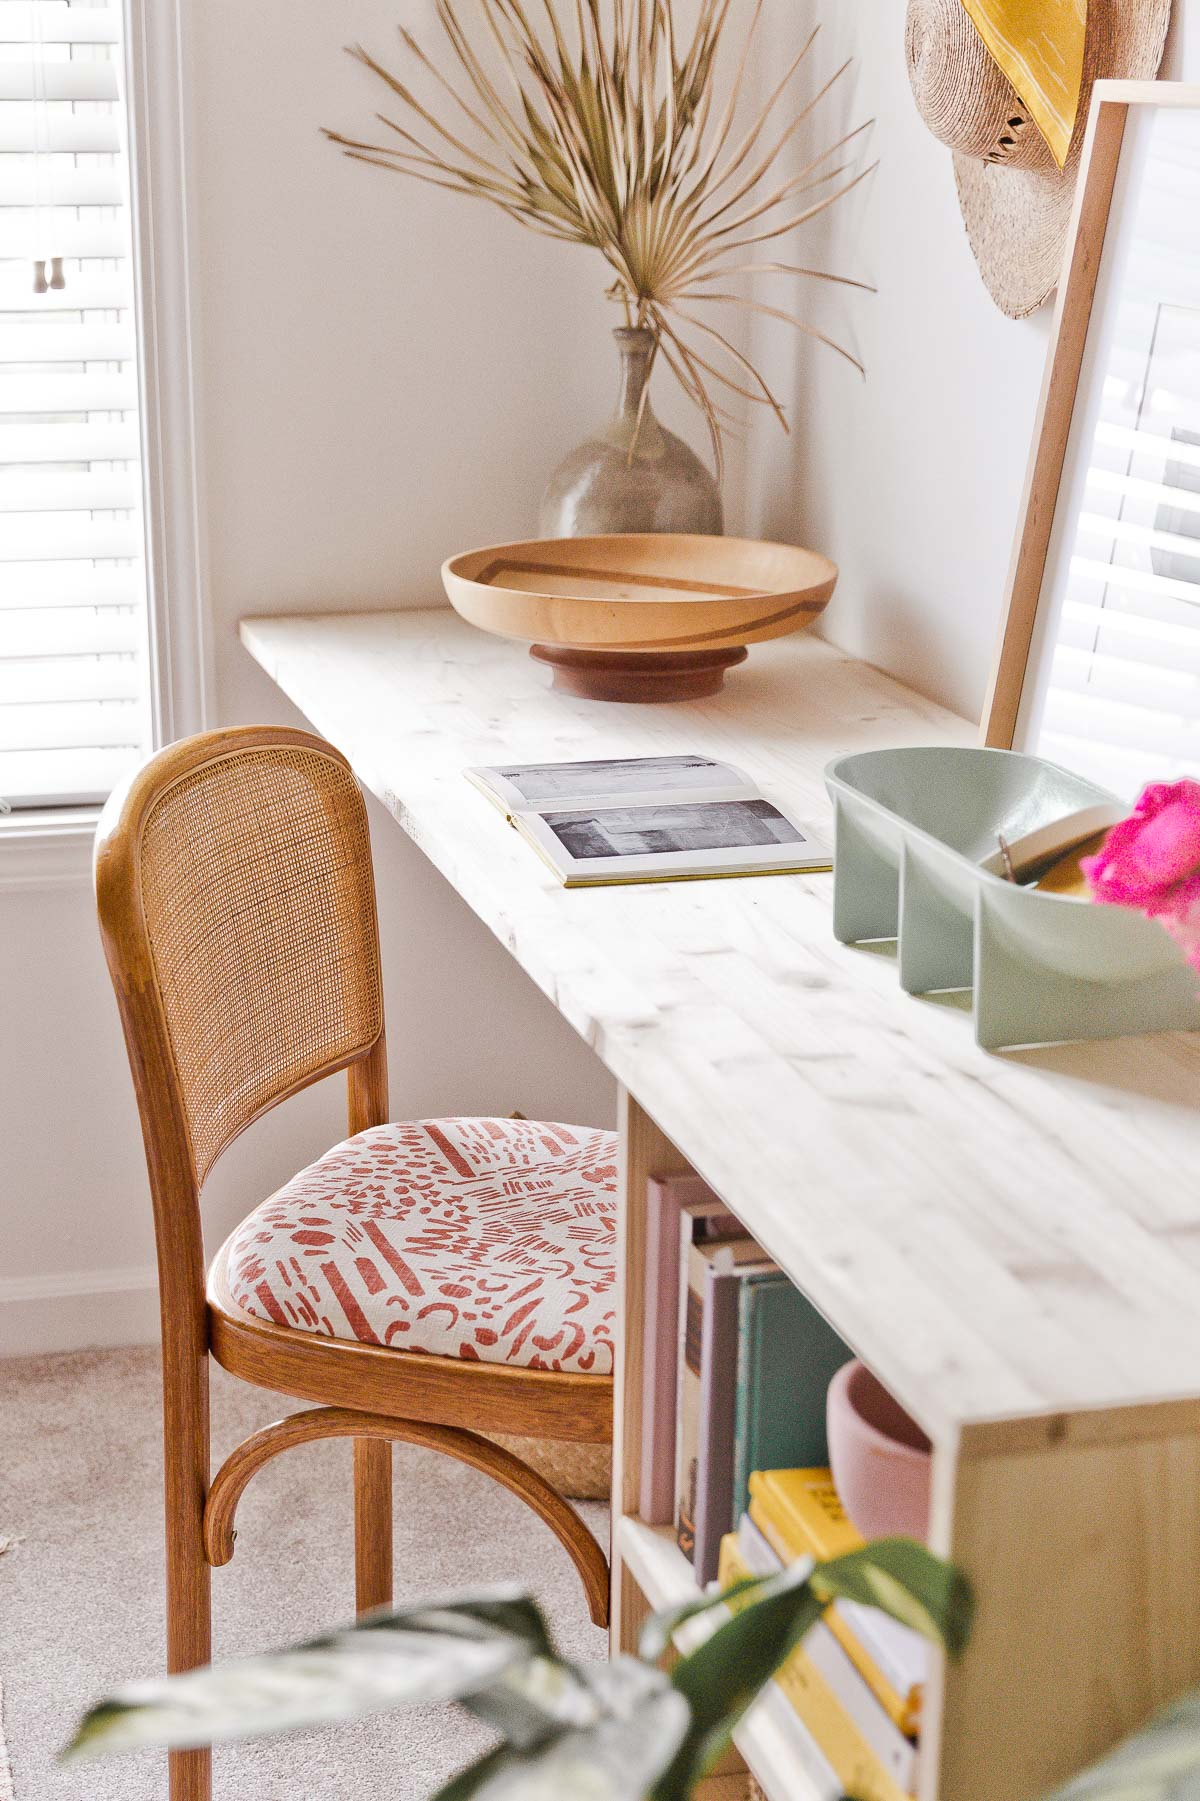 DIY desk idea (with storage) that uses just a few pieces of wood and some cleverly place corner braces. Click through for the tutorial. #desk #organicmodern #bookshelf #deskinspiration #wooddesk #diyfurniture